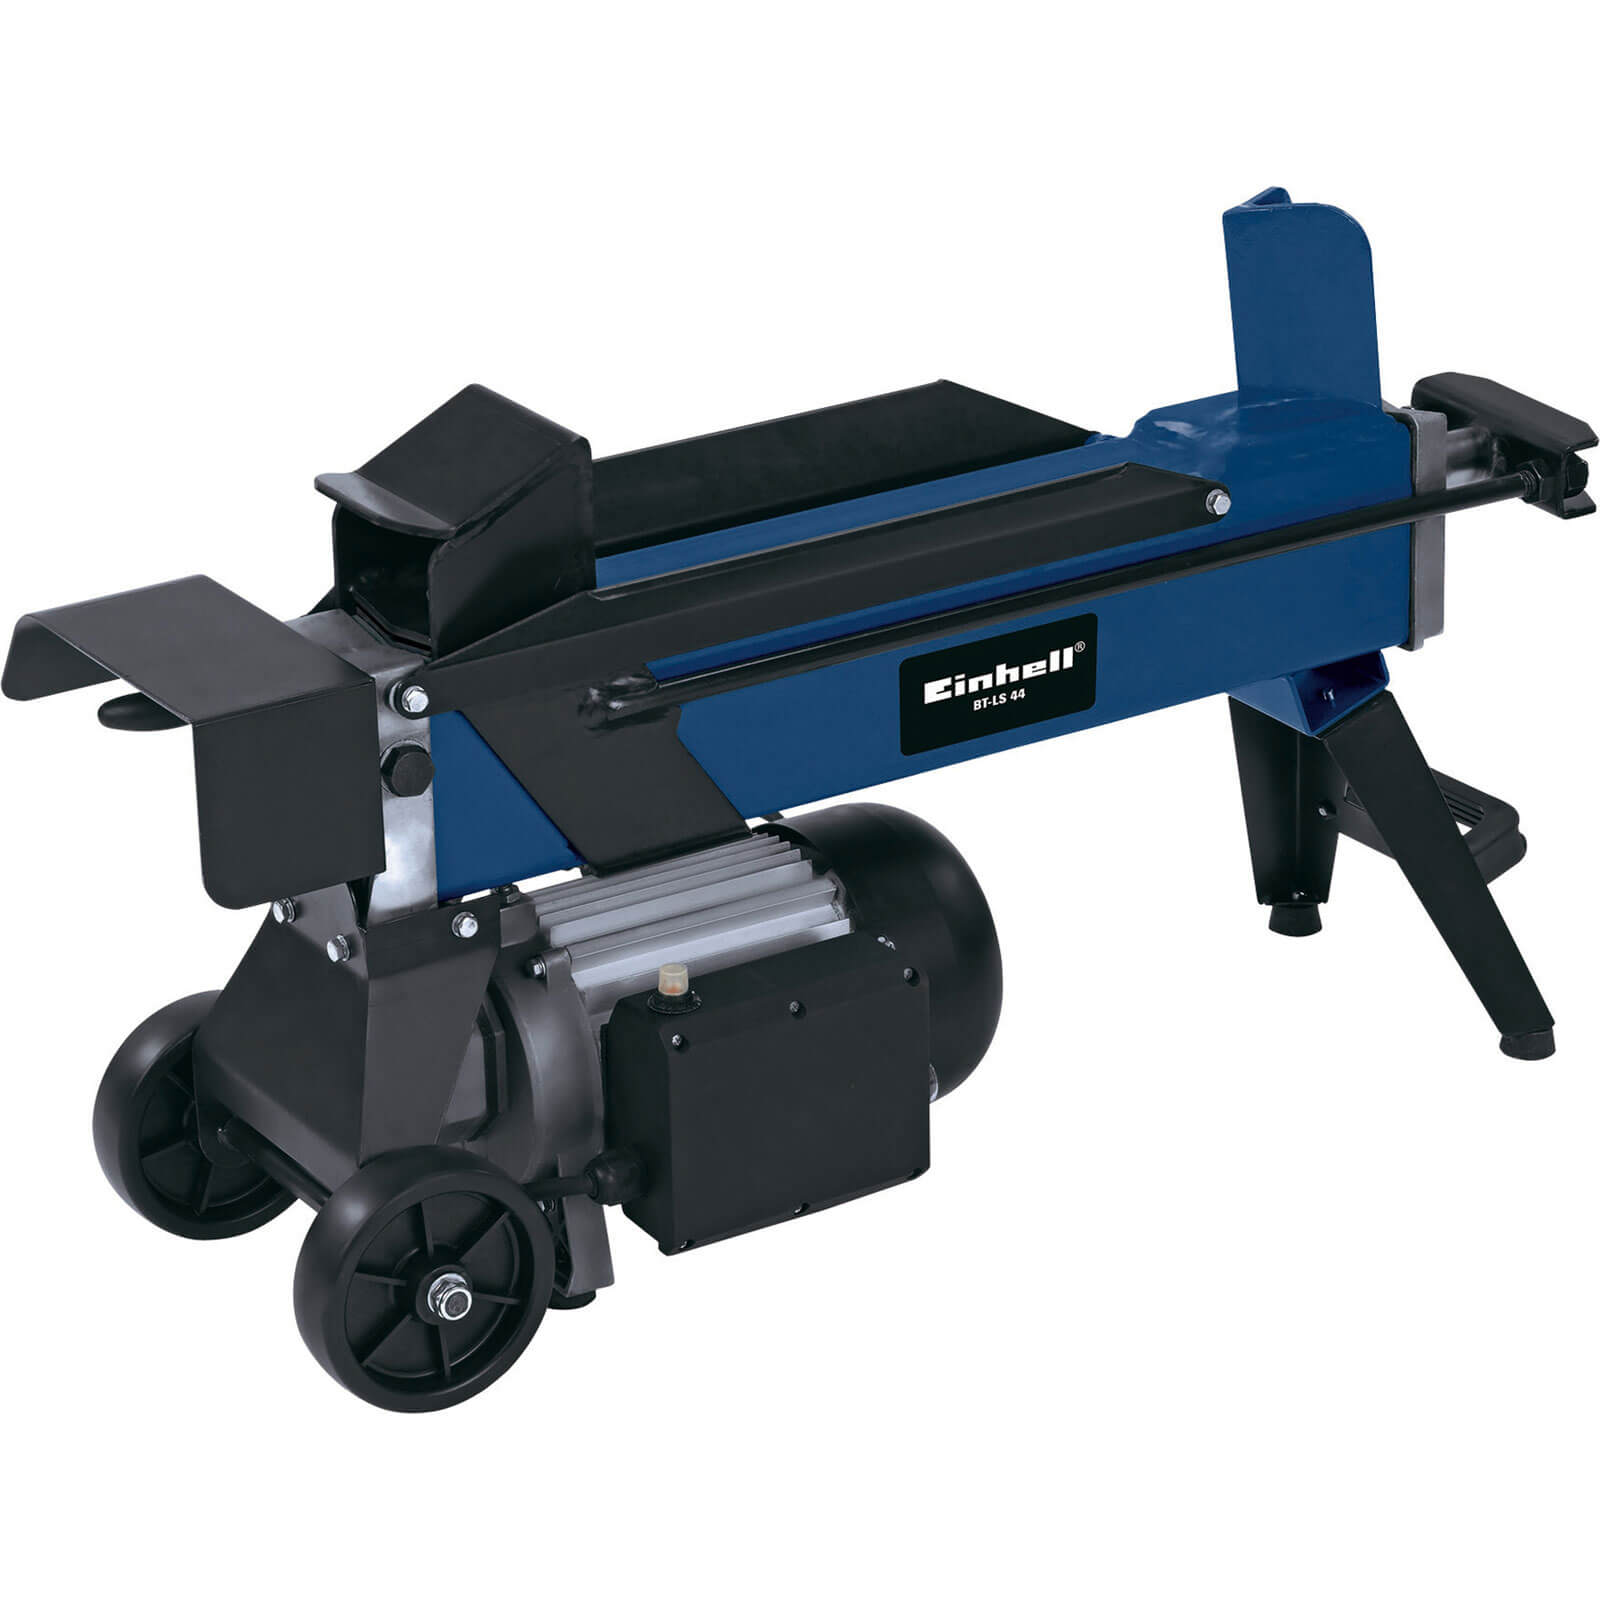 Einhell BT-LS44 Electric Log Splitter 4 Ton Pressure 1500w 240v